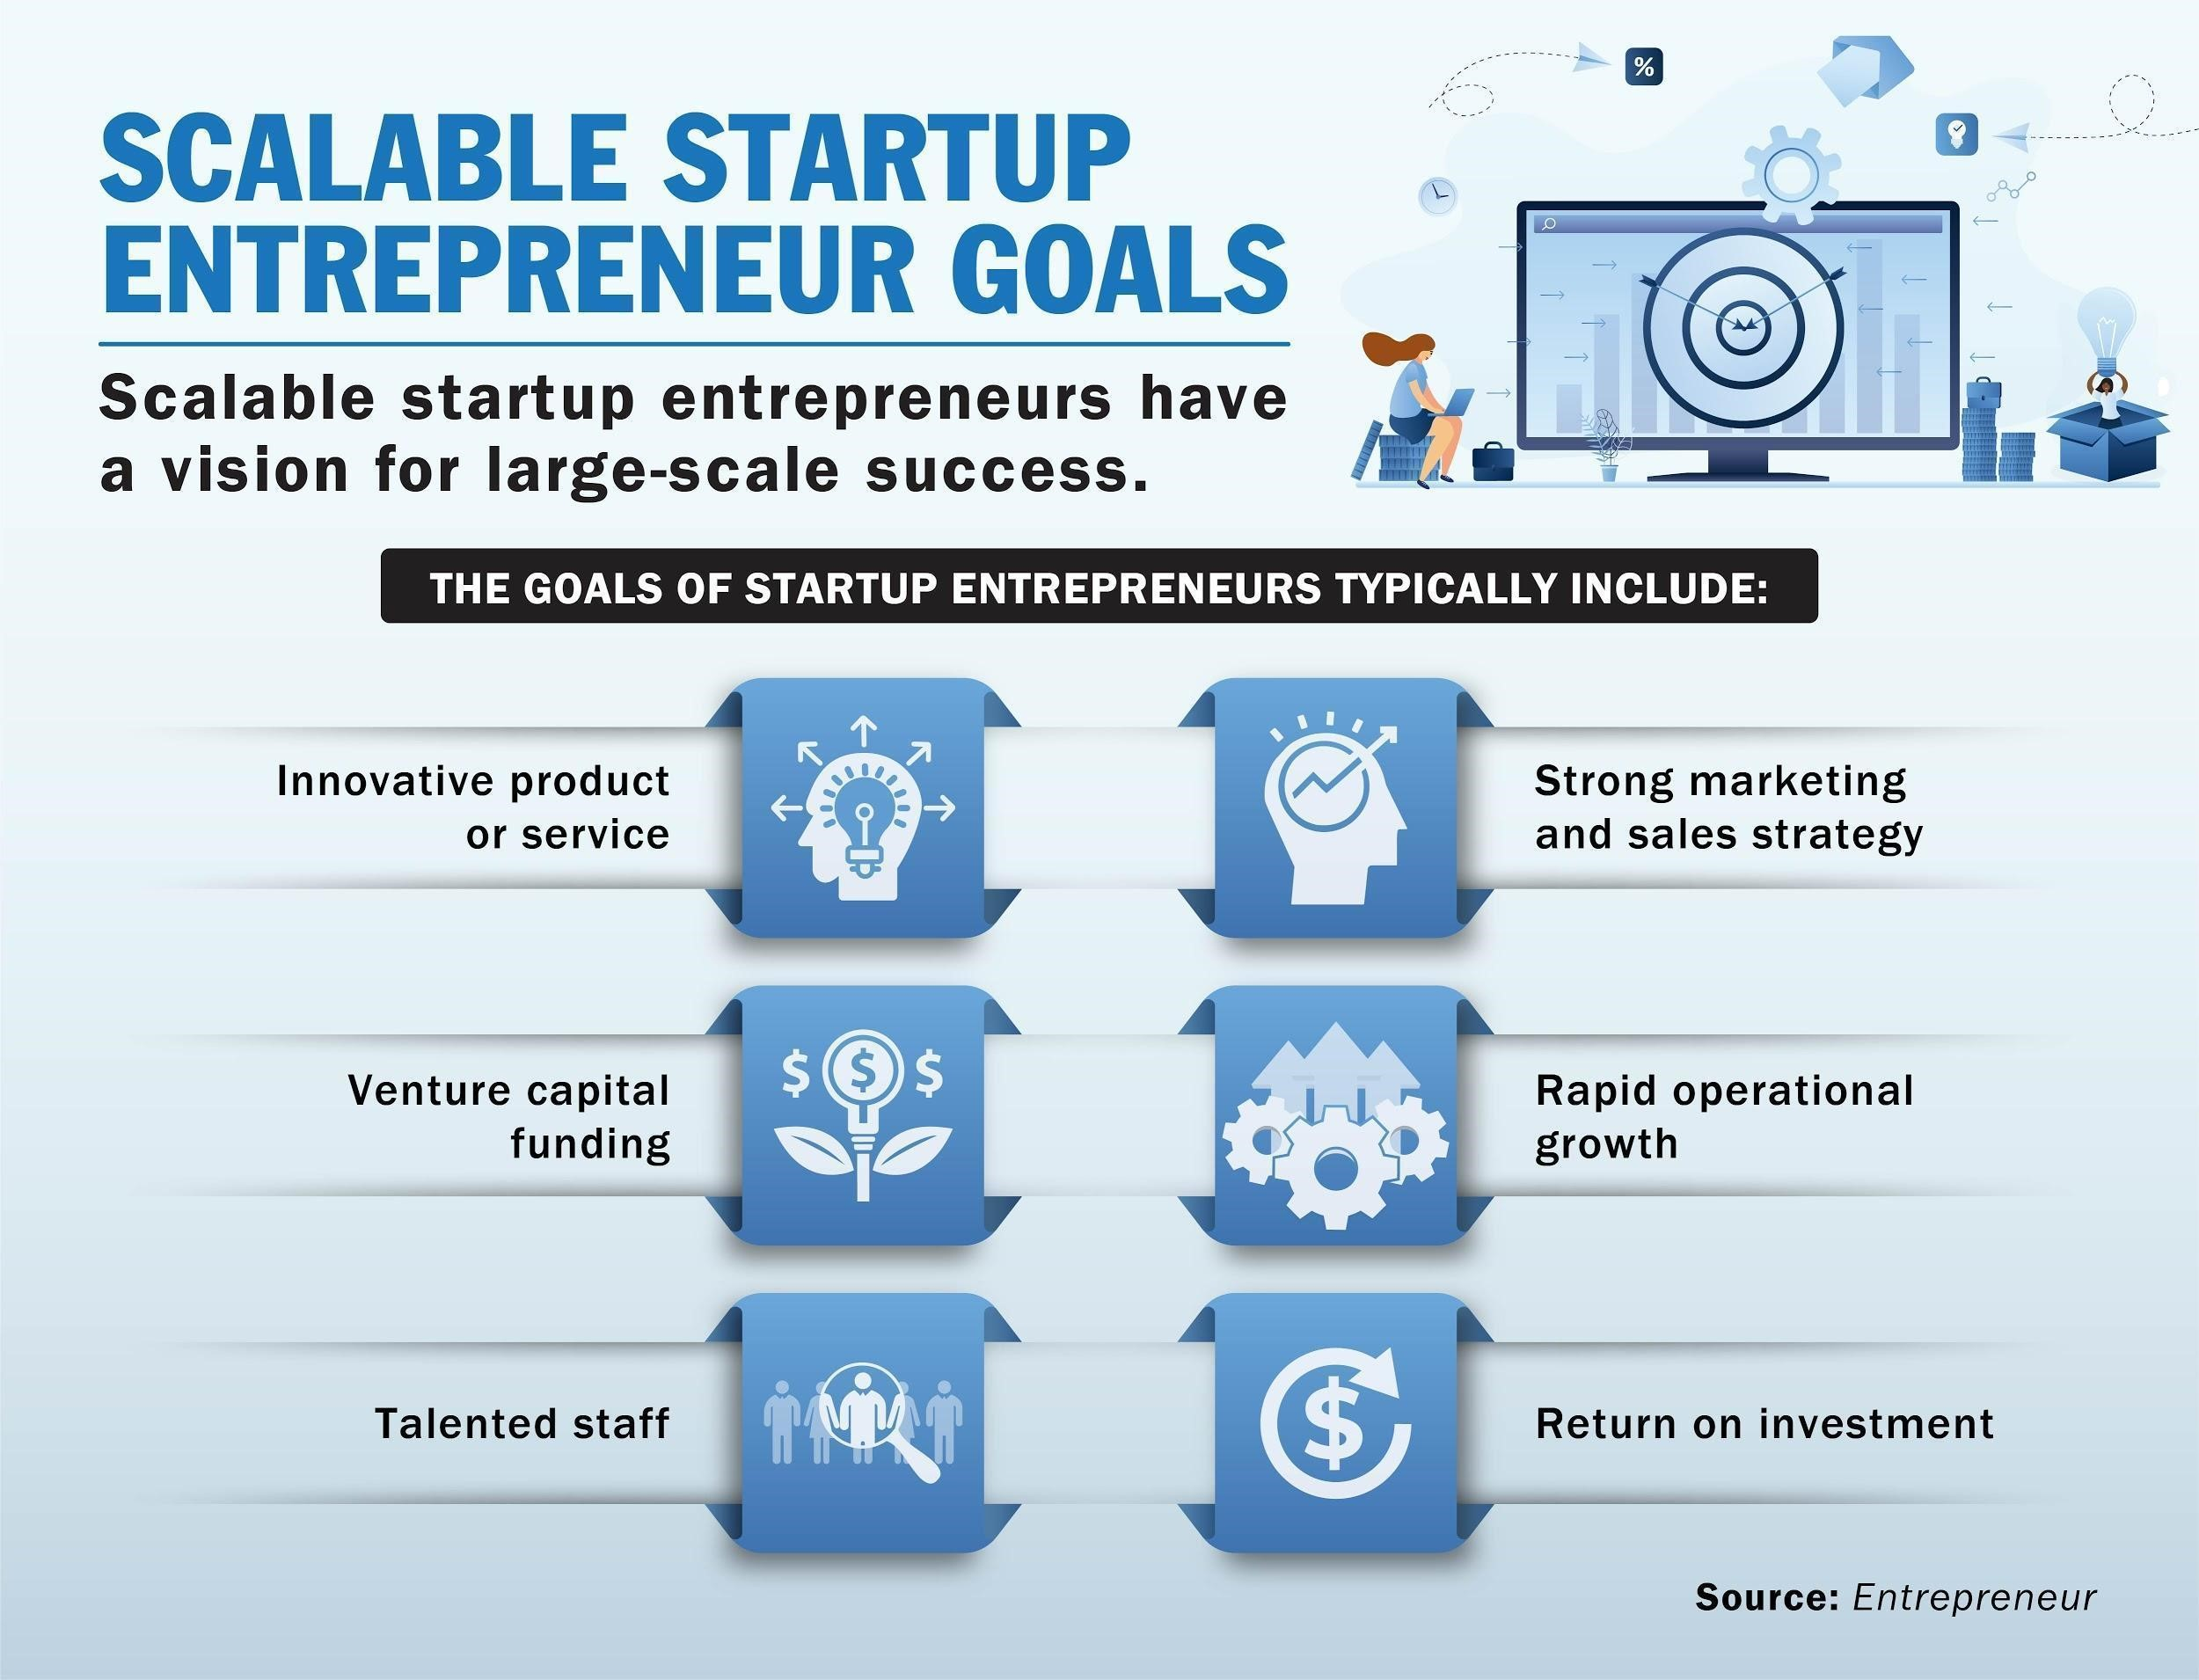 Scalable startup entrepreneurs work toward a large-scale vision of success.